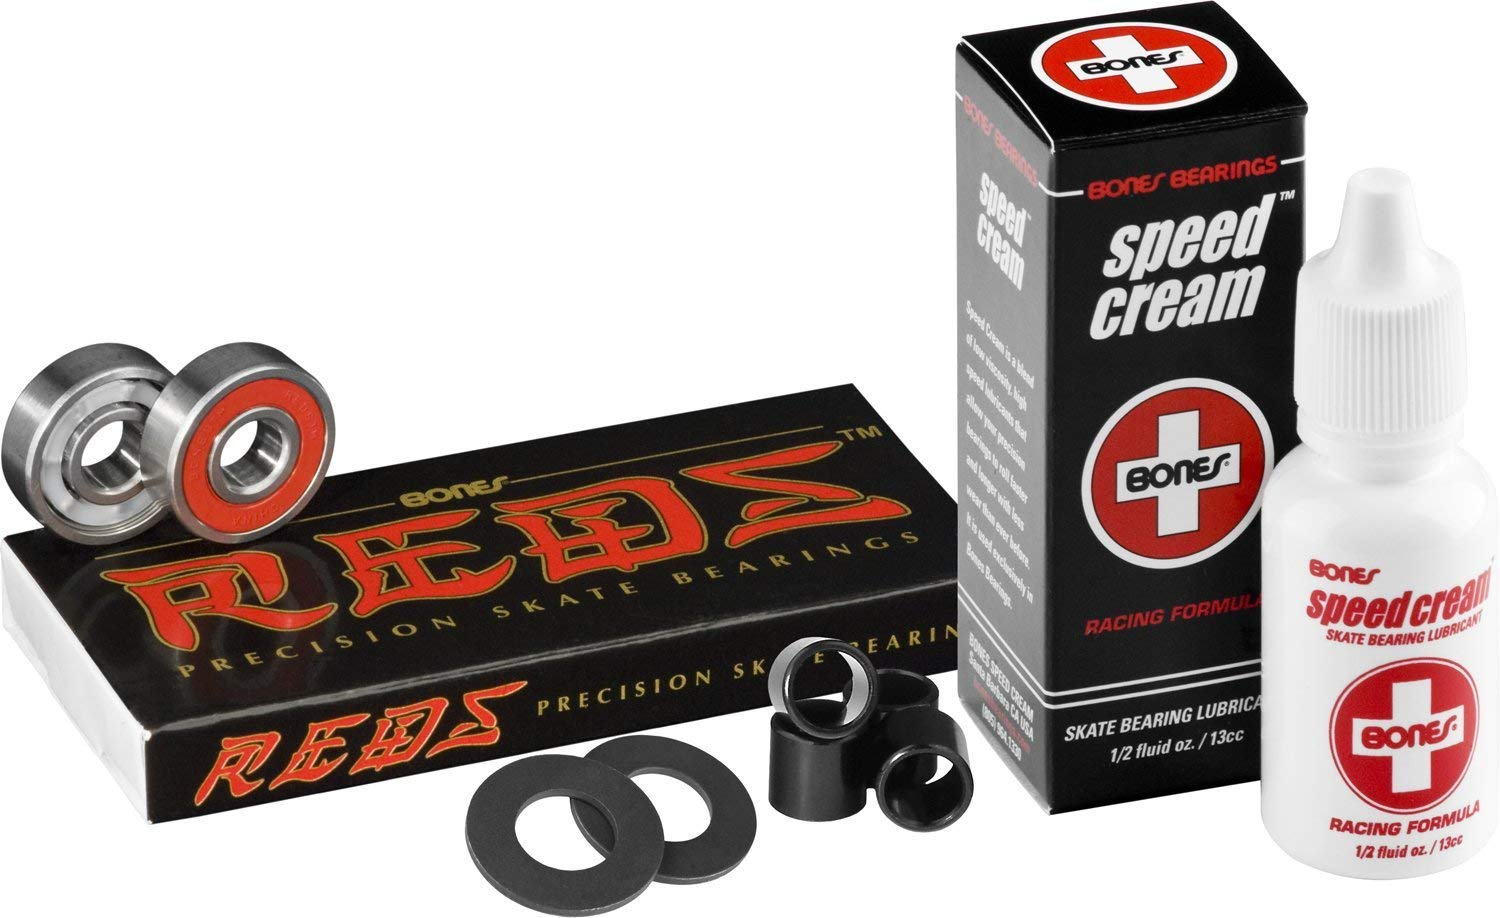 Bones Reds Skate Precision Bearings